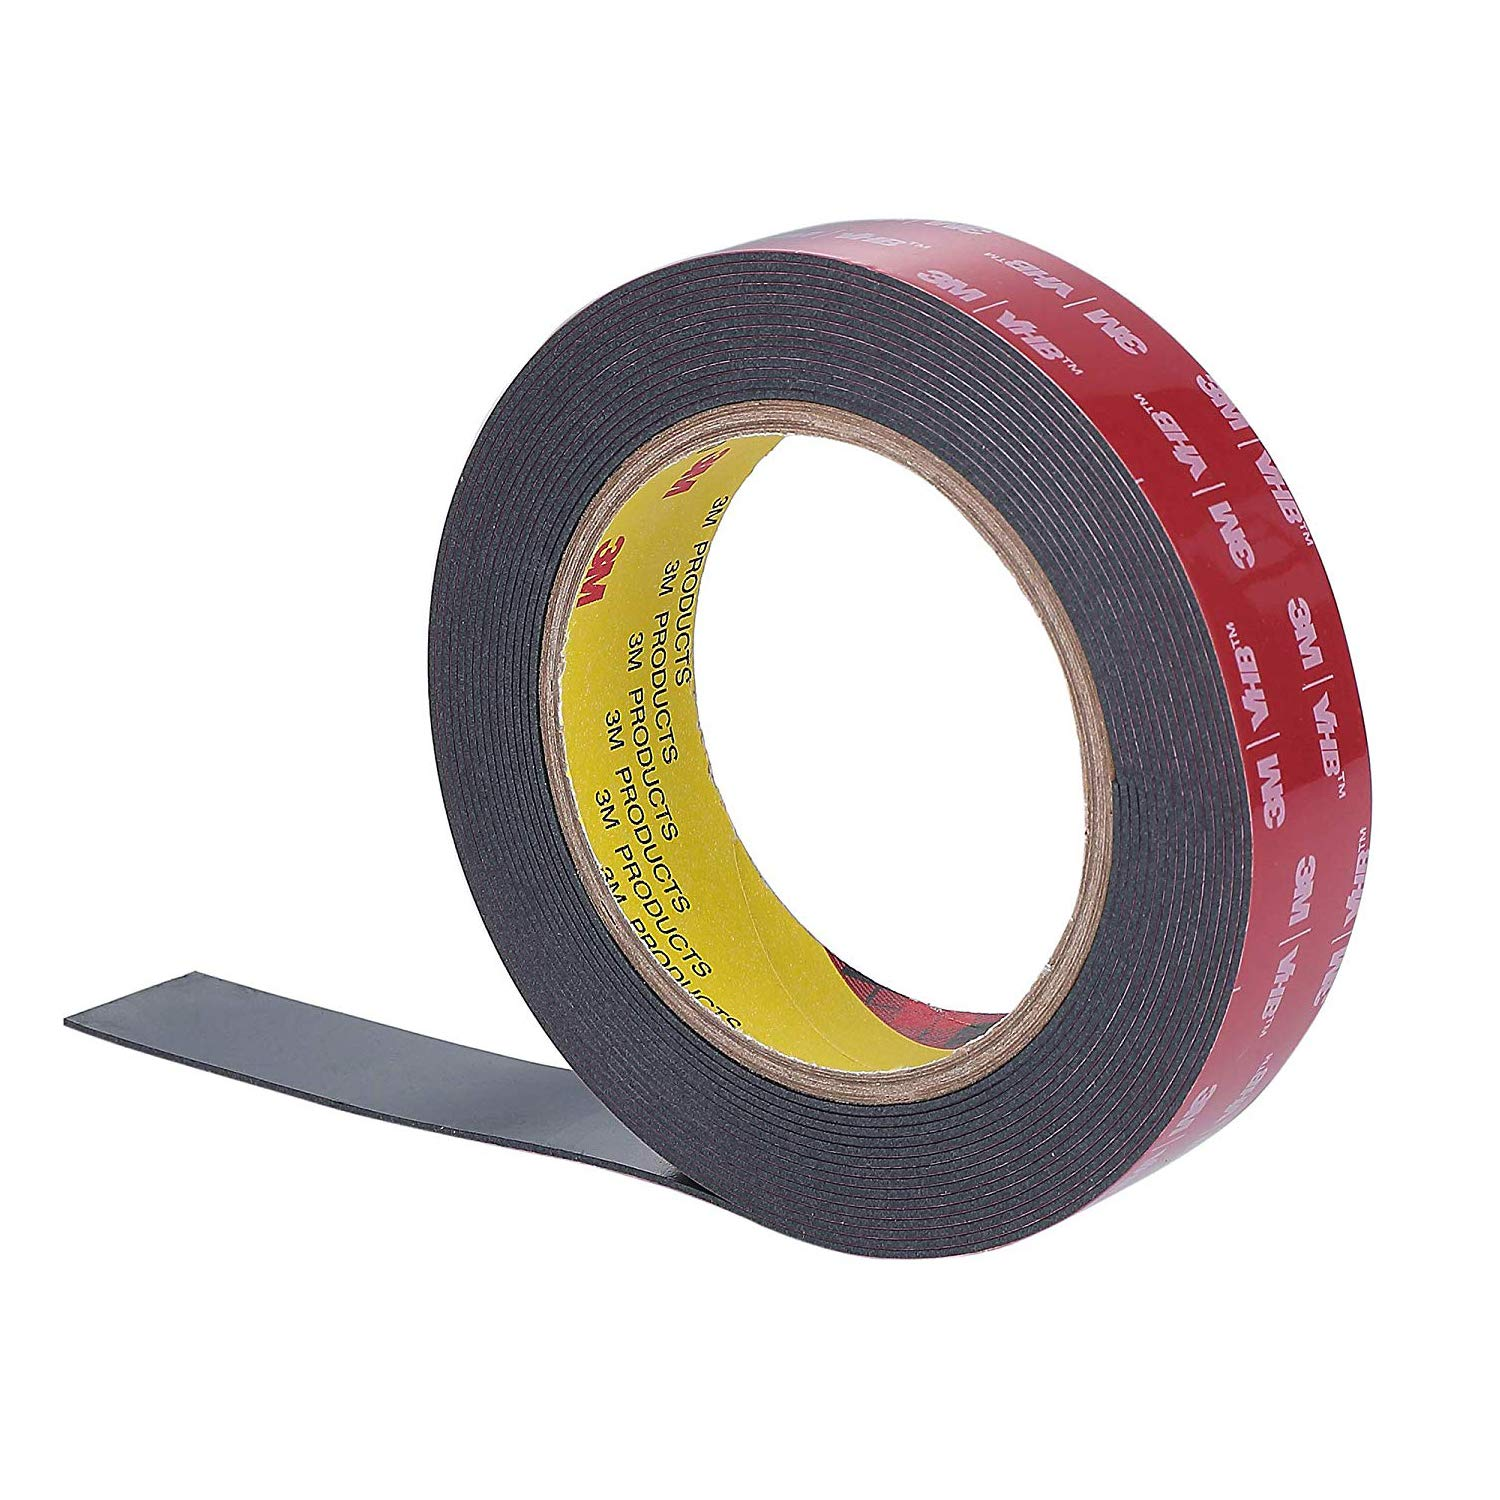 0.94in x 9ft LED Light Strip Tape Adhesive Waterproof Tape 3M VHB Tape Heavy Duty Mounting Home Decor CANOPUS Double Sided Tape Automotive Office D/écor for LED Strip Lights